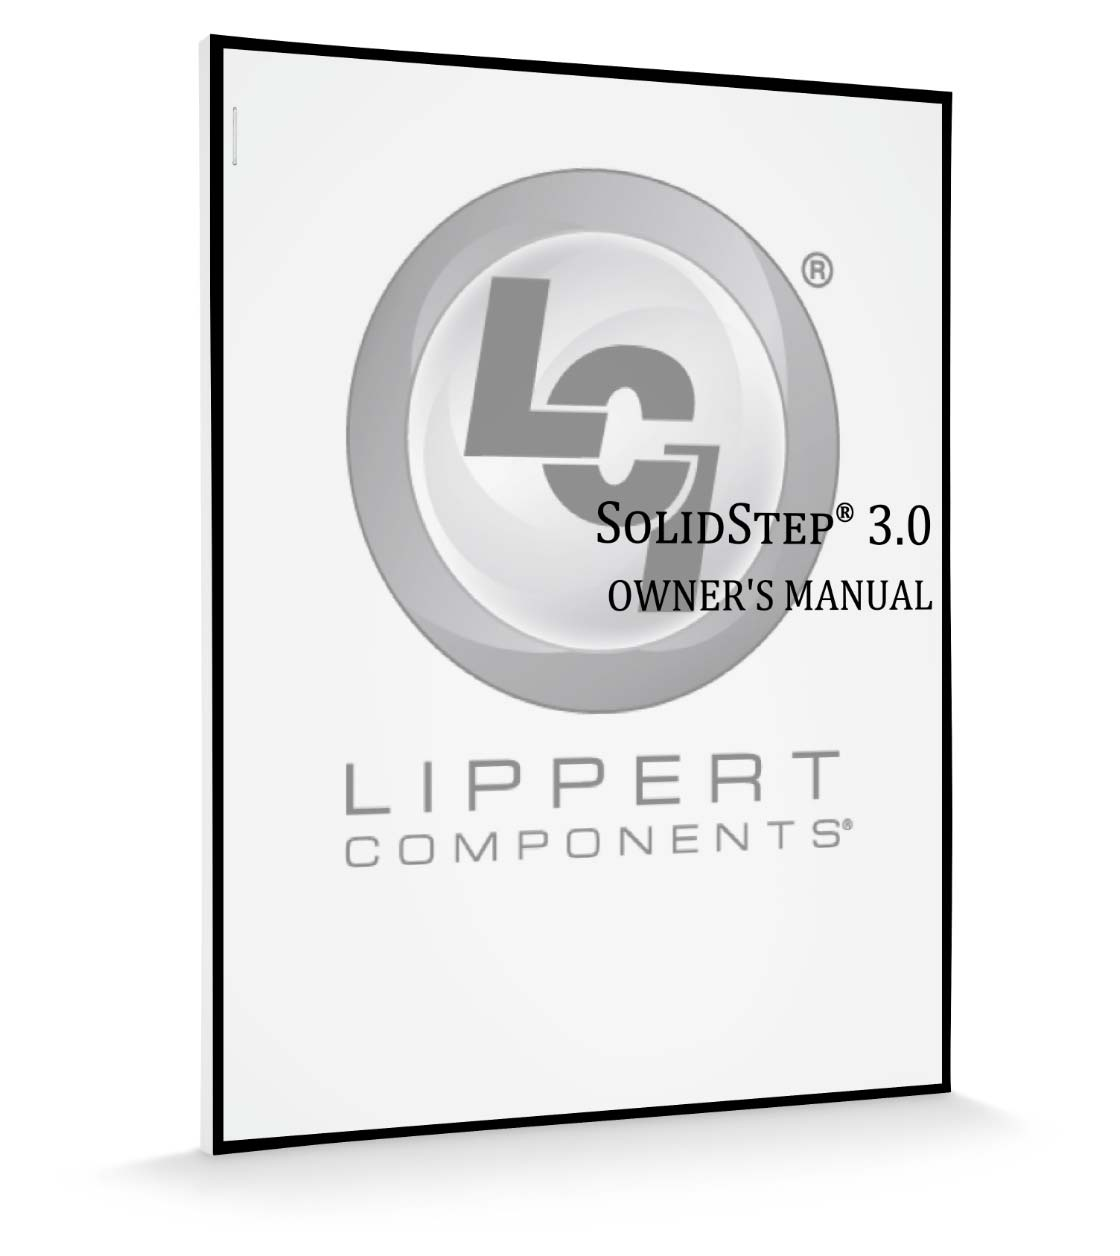 Download Solid Step Owner's Manual